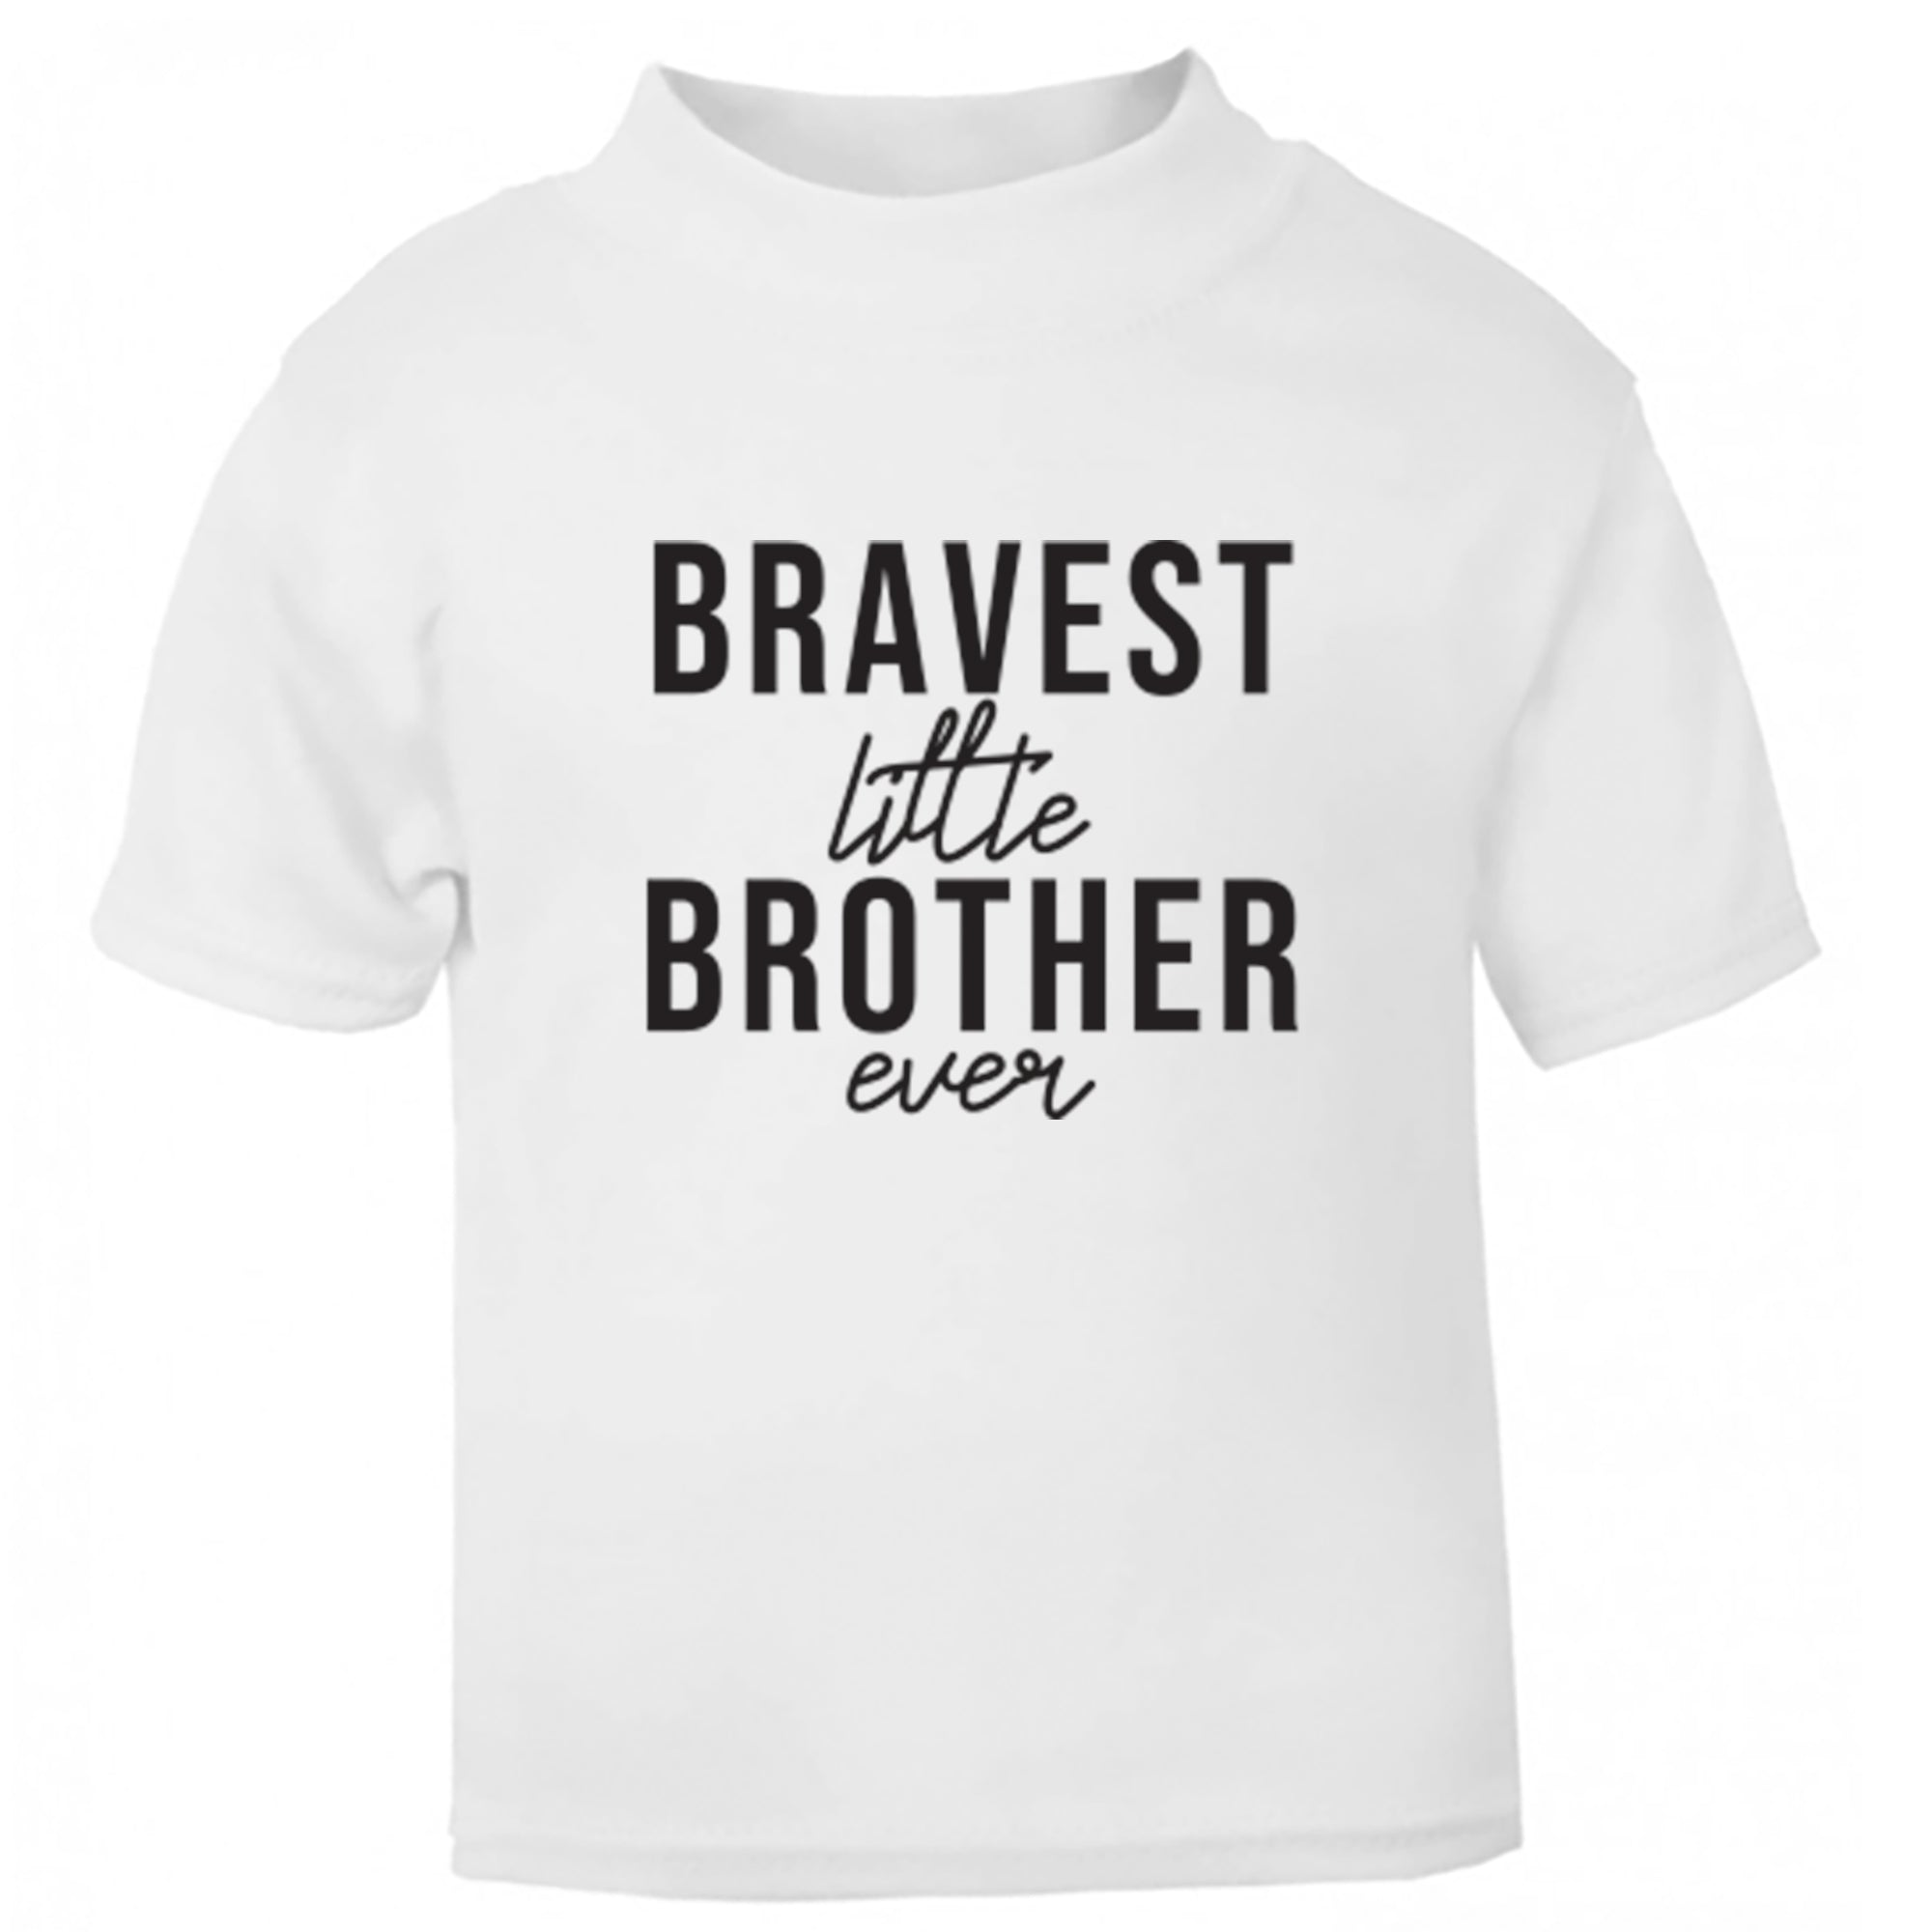 Bravest Little Brother Ever Childrens Ages 3/4-12/14 Unisex Fit T-Shirt S0520 - Illustrated Identity Ltd.